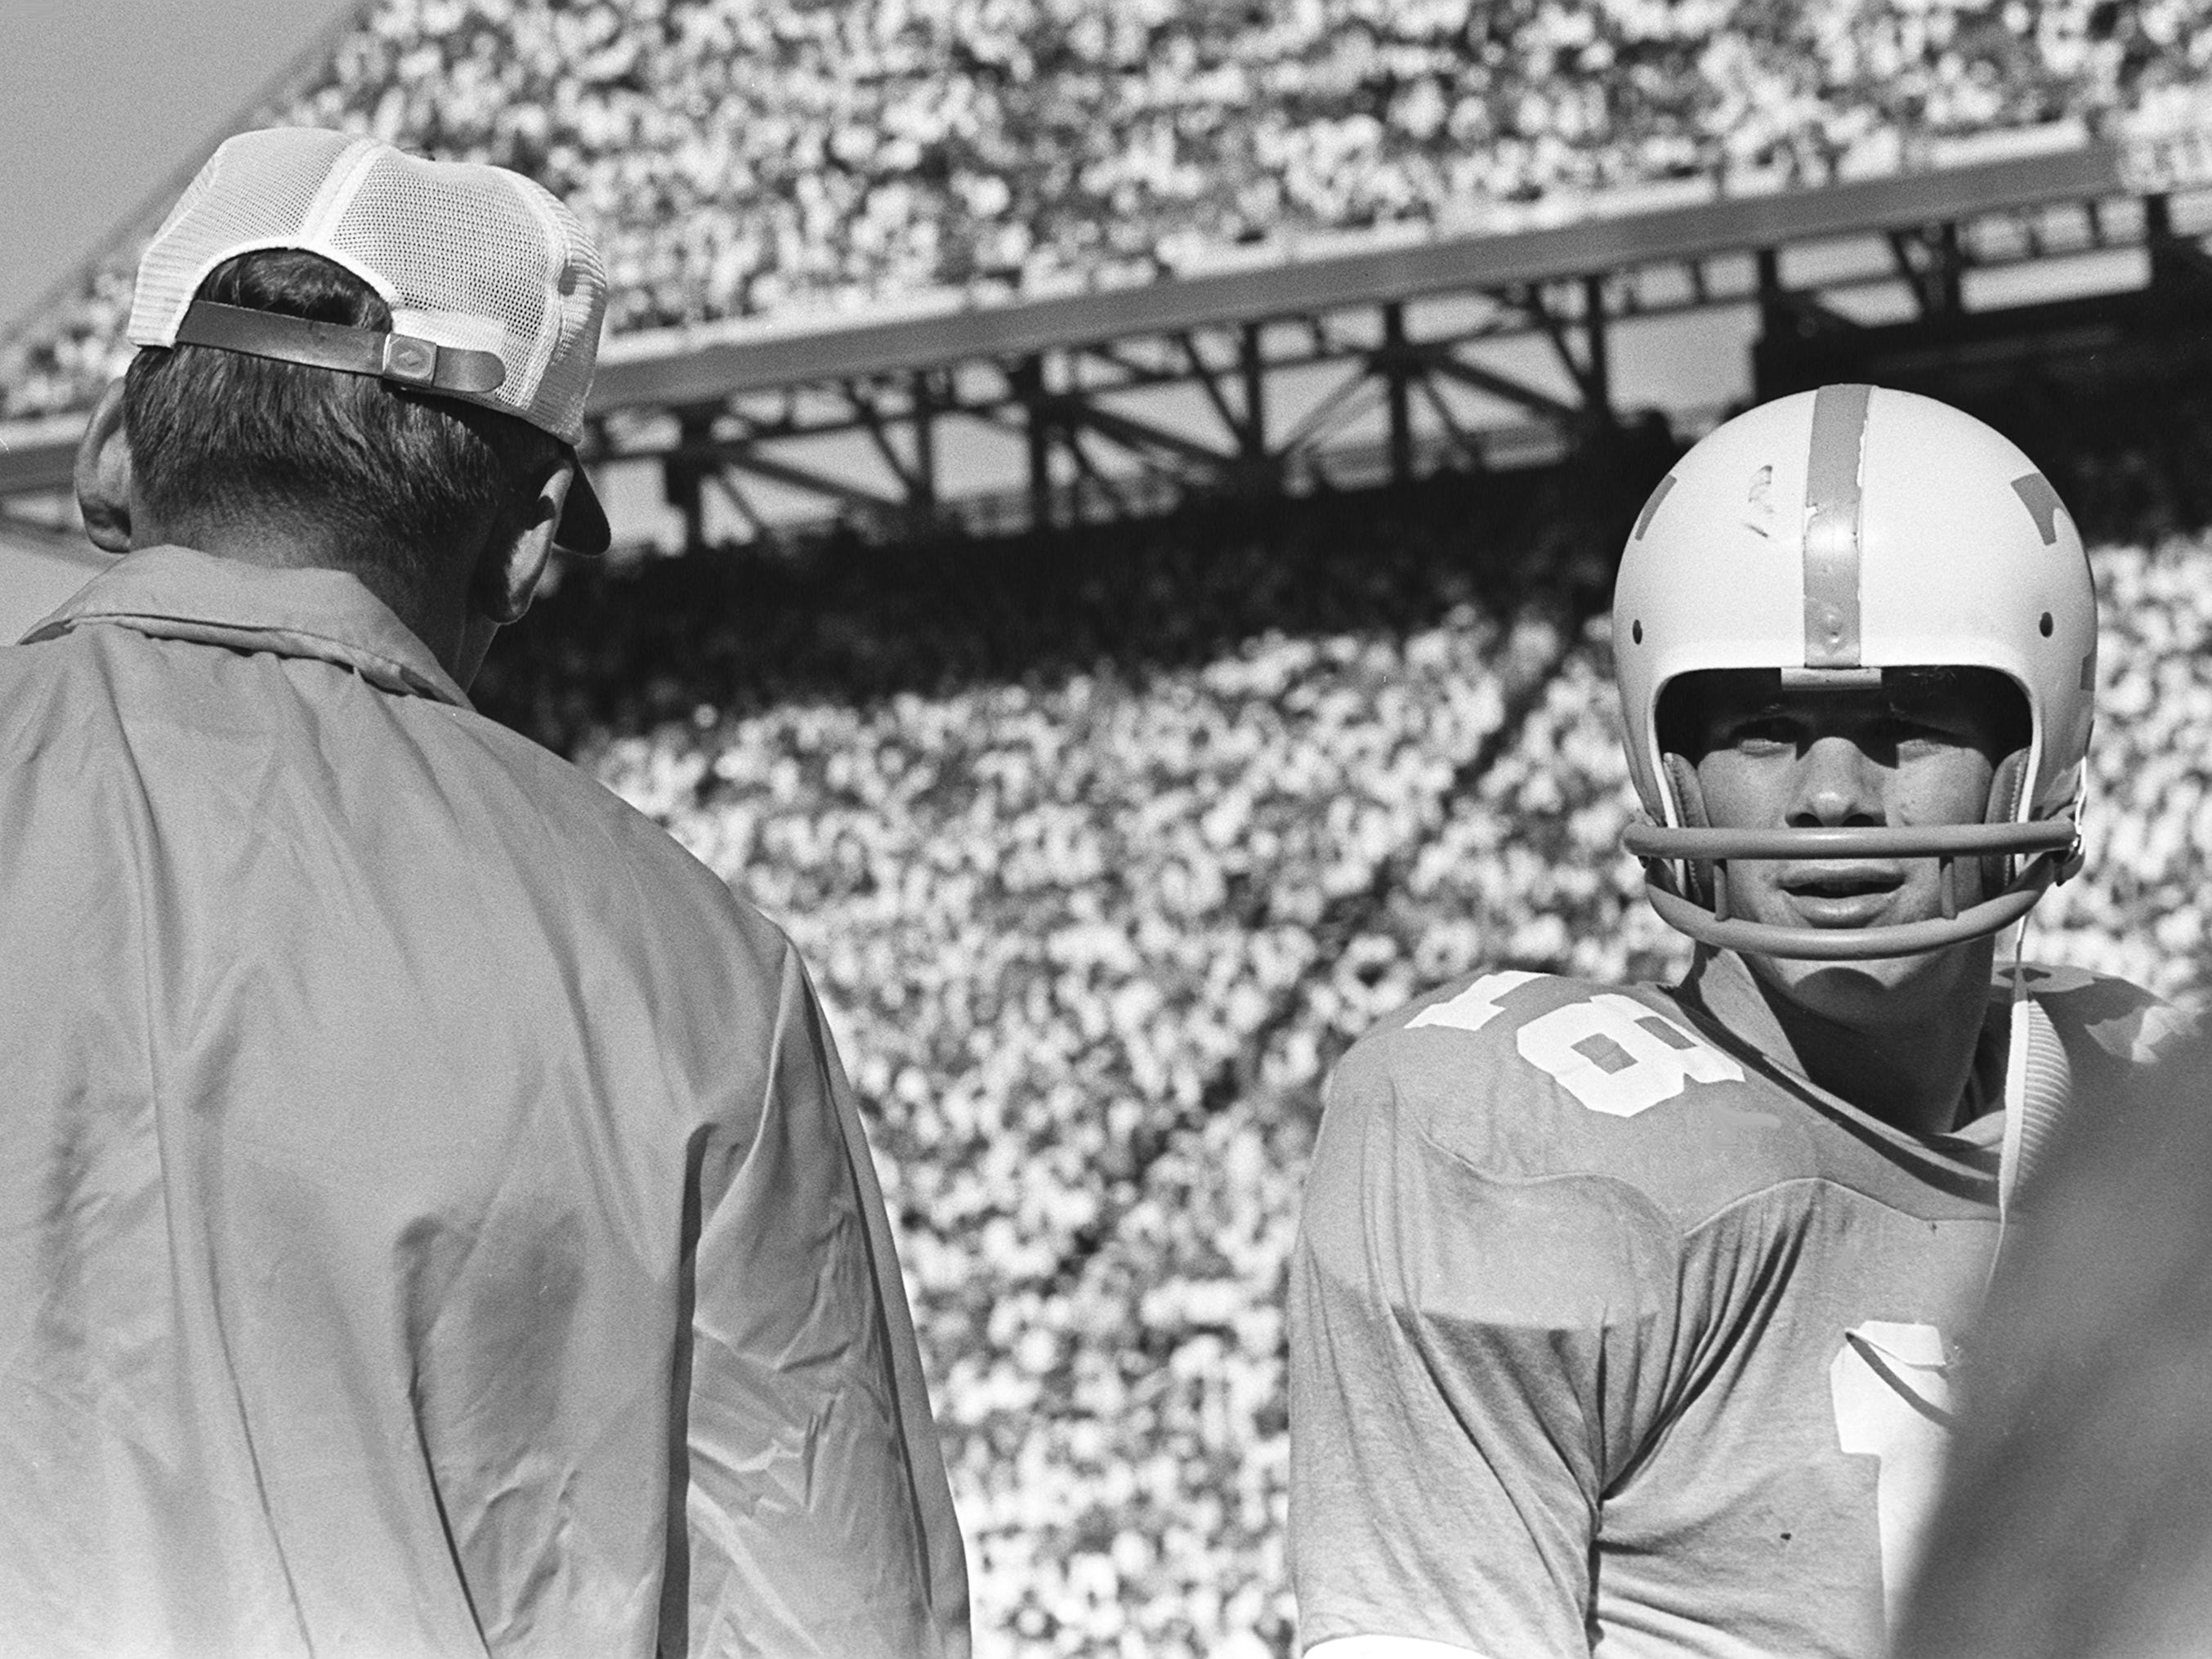 Tennessee senior quarterback Bubba Wyche (18) gets some instructions from head coach Doug Dickey before going back on the field against Alabama at Neyland Stadium Oct. 19, 1968.